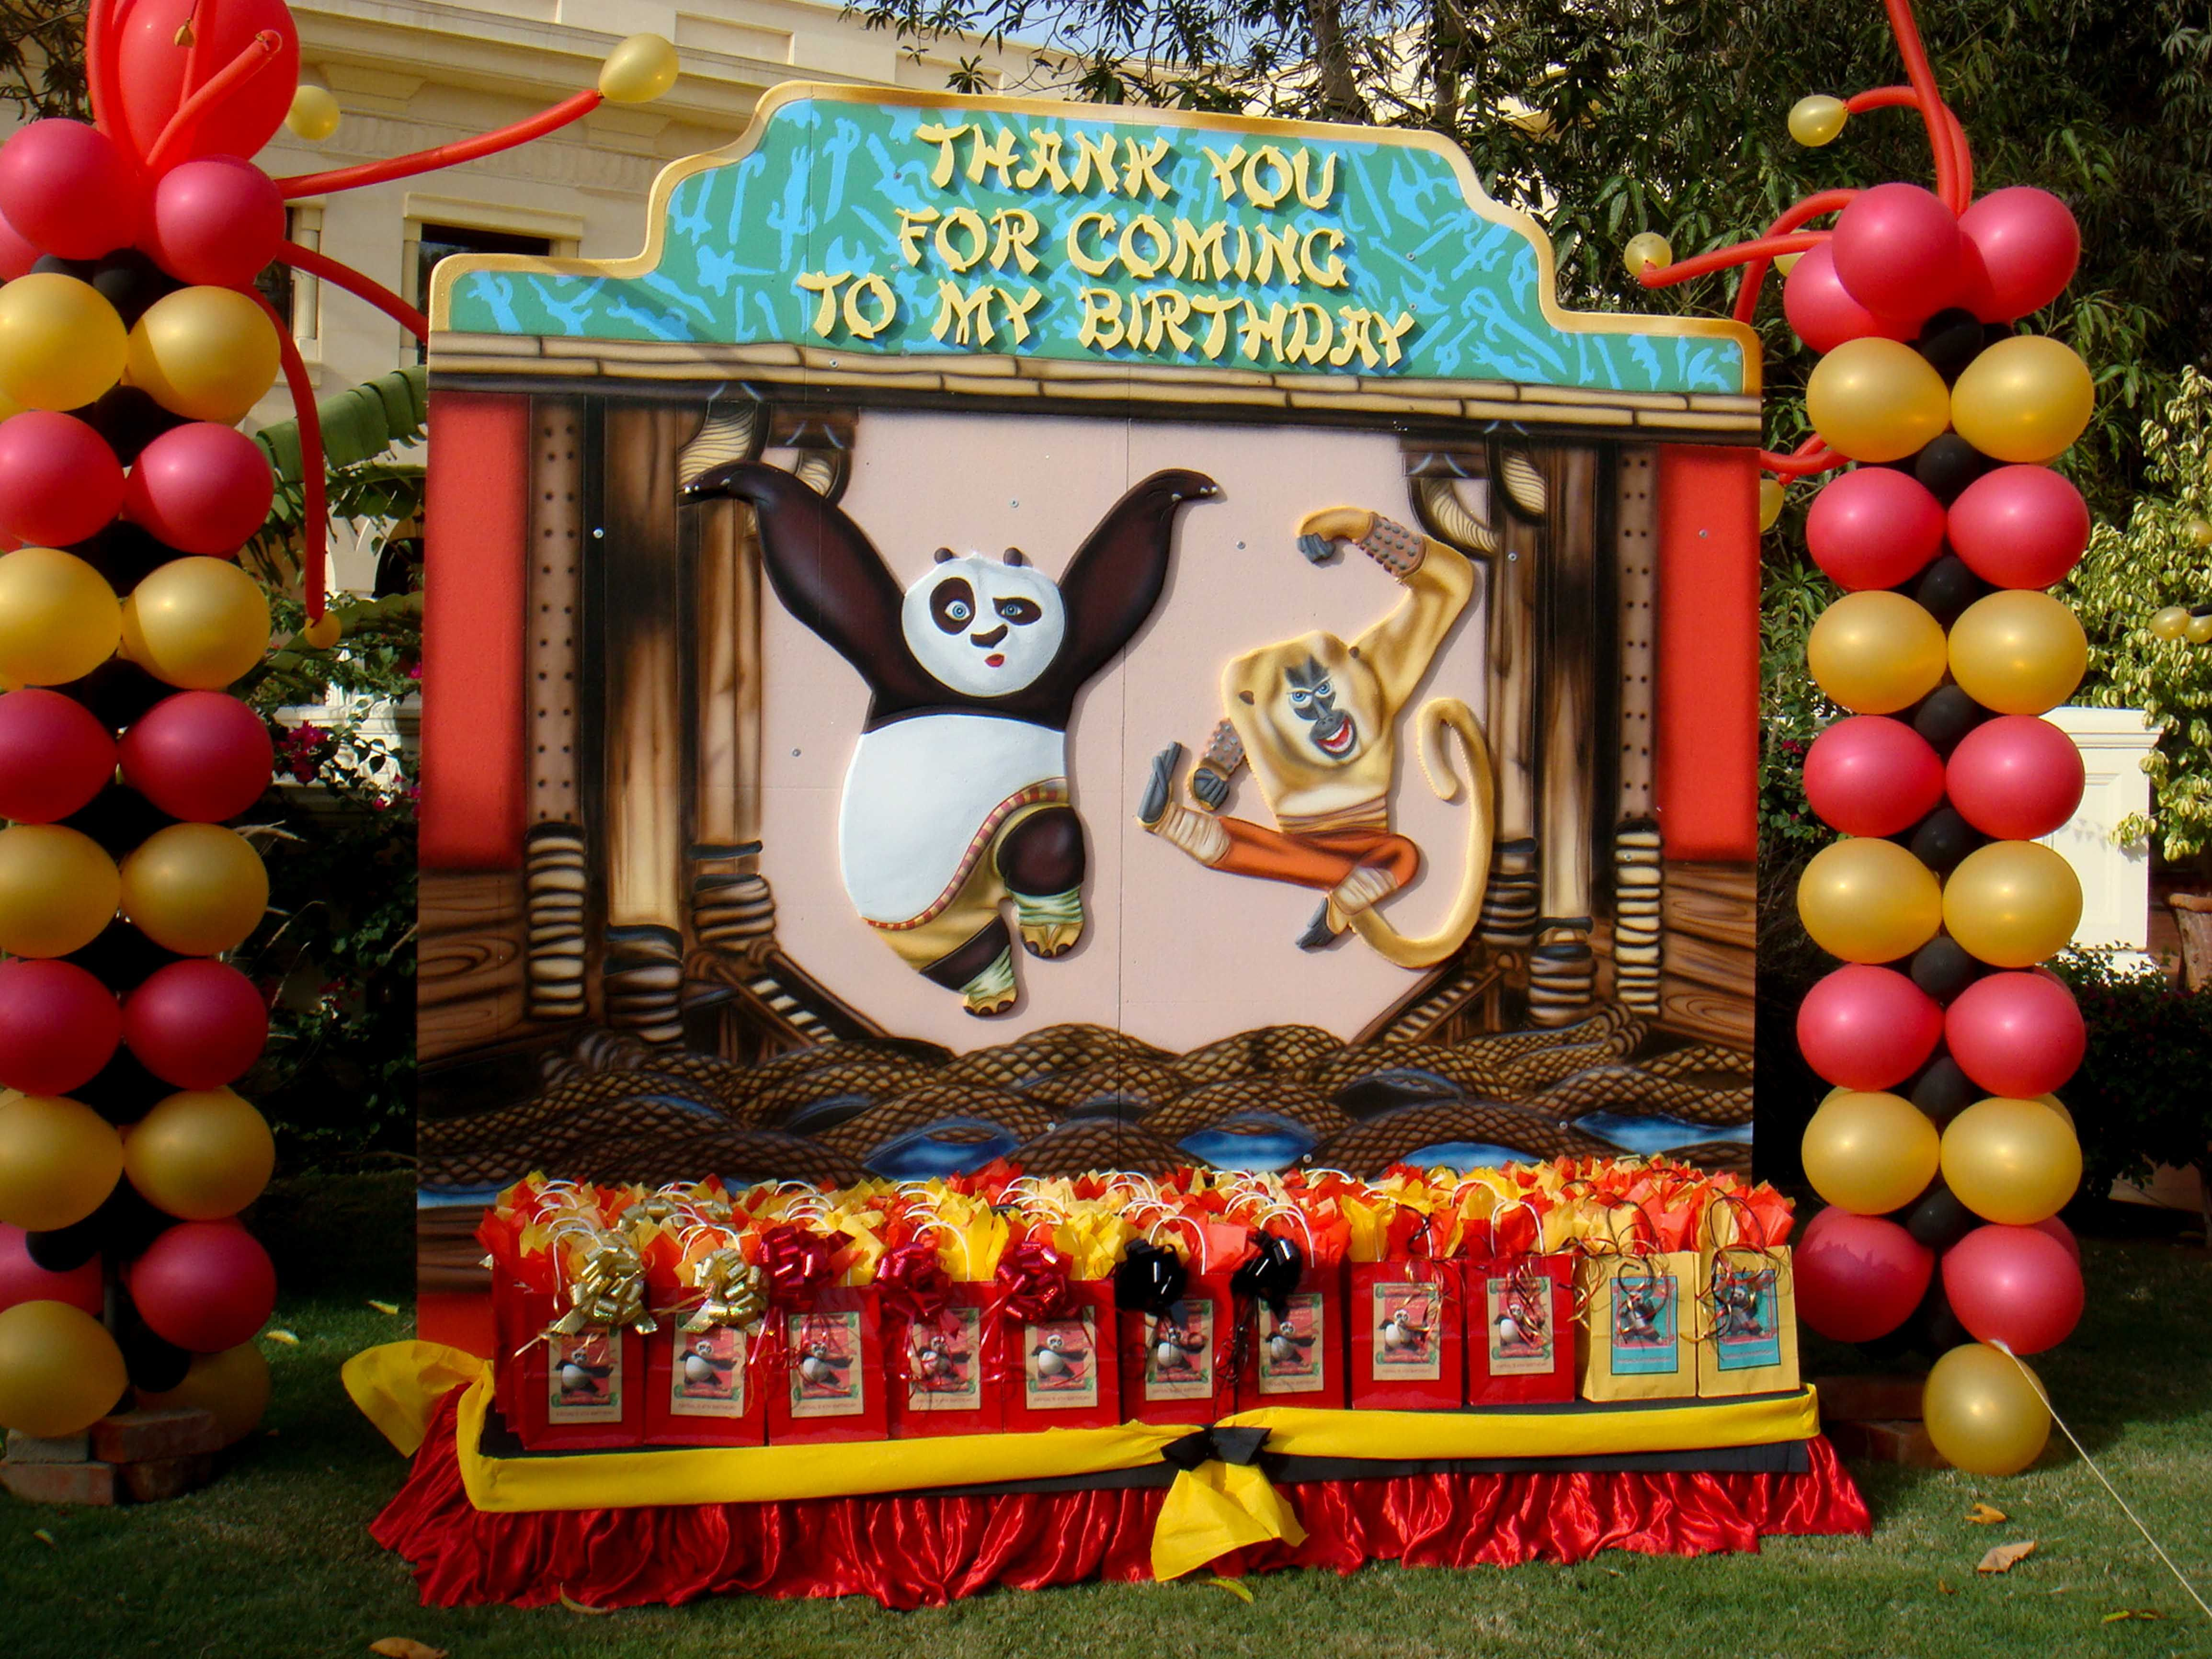 Balloon columns at the kungfu panda themed party by